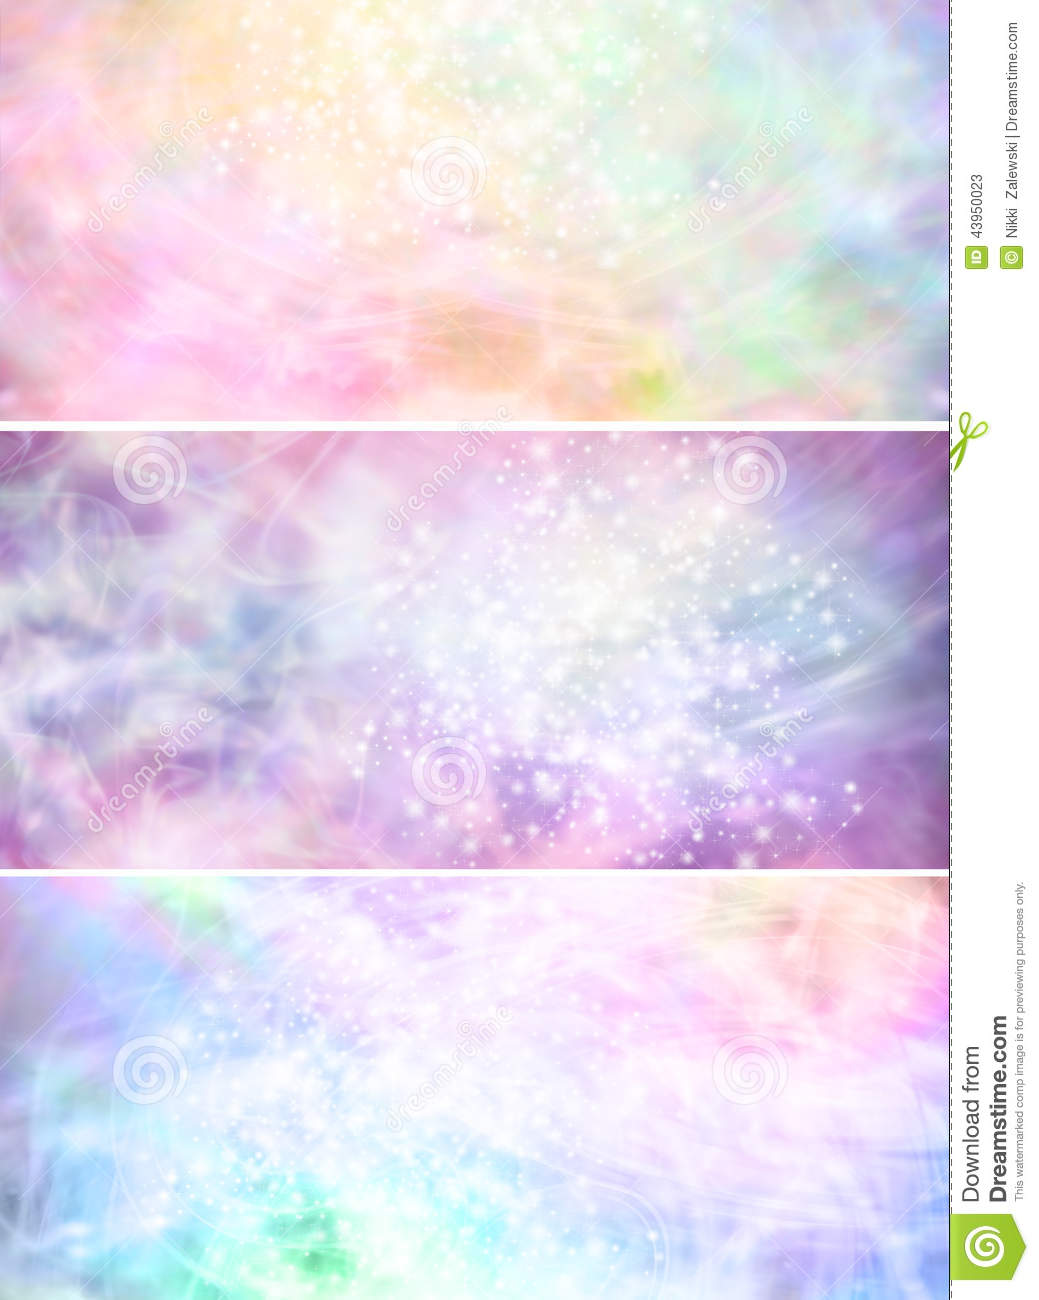 Free Falling Snow Wallpaper Misty Sparkling Pastel Colored Background Banners X 3